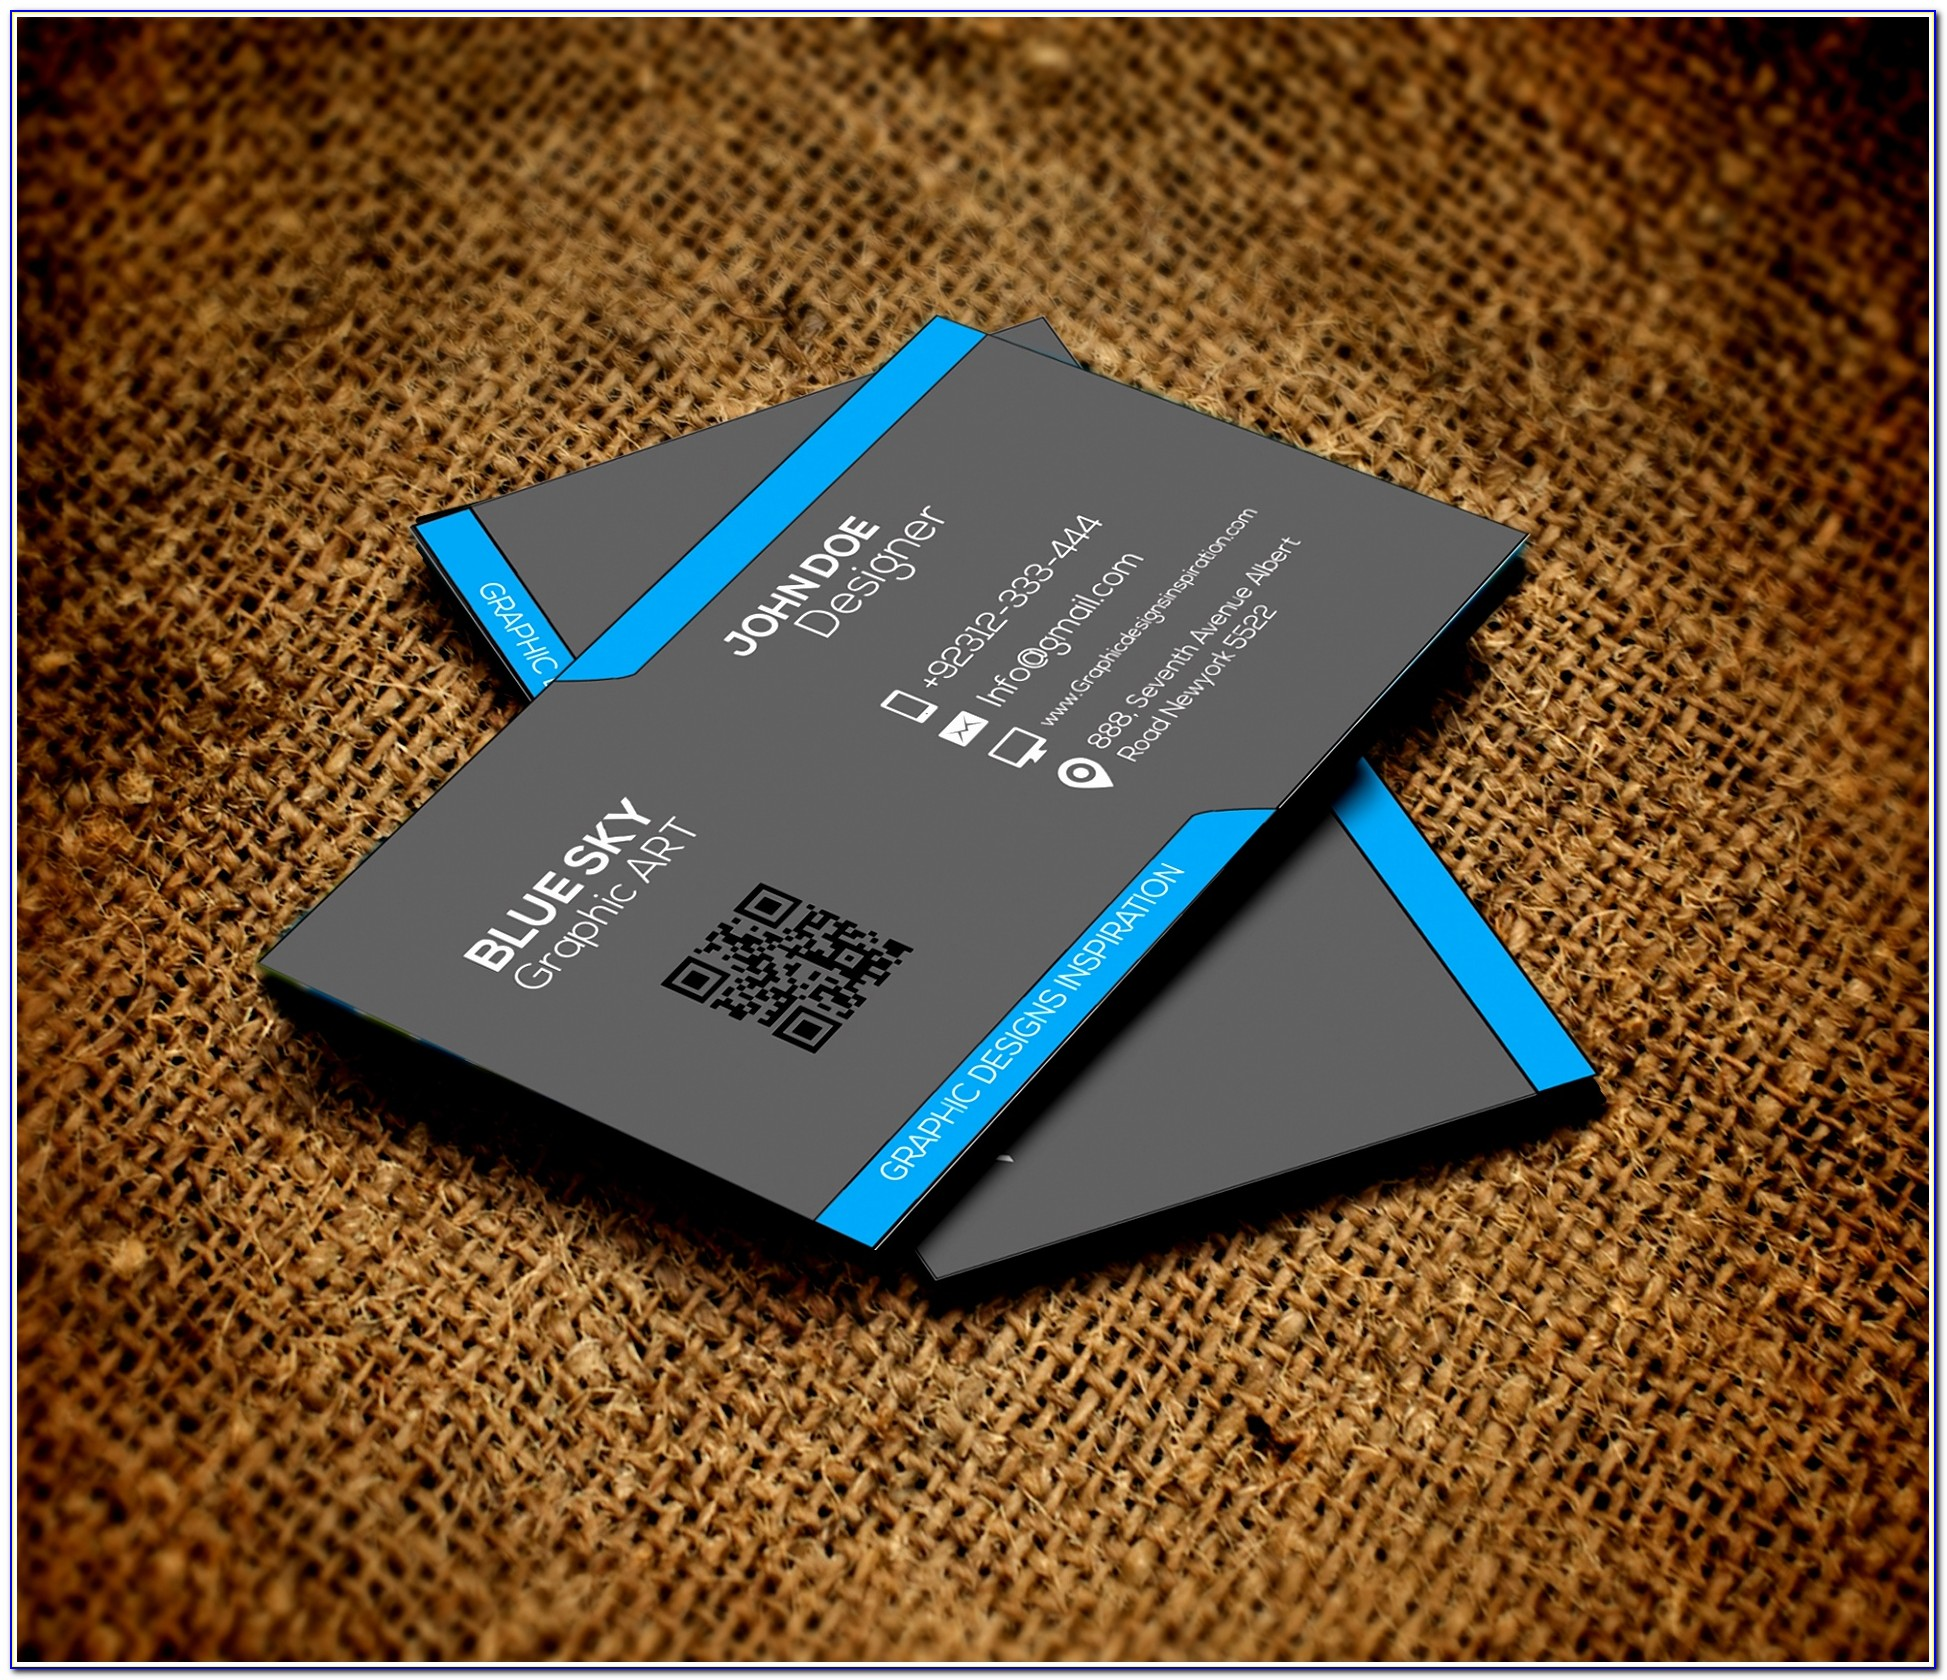 Professional Business Card Design Templates Sample Visiting Card Designs Templates Free Download Inspirational Pdf Word Excel Templates Wovab